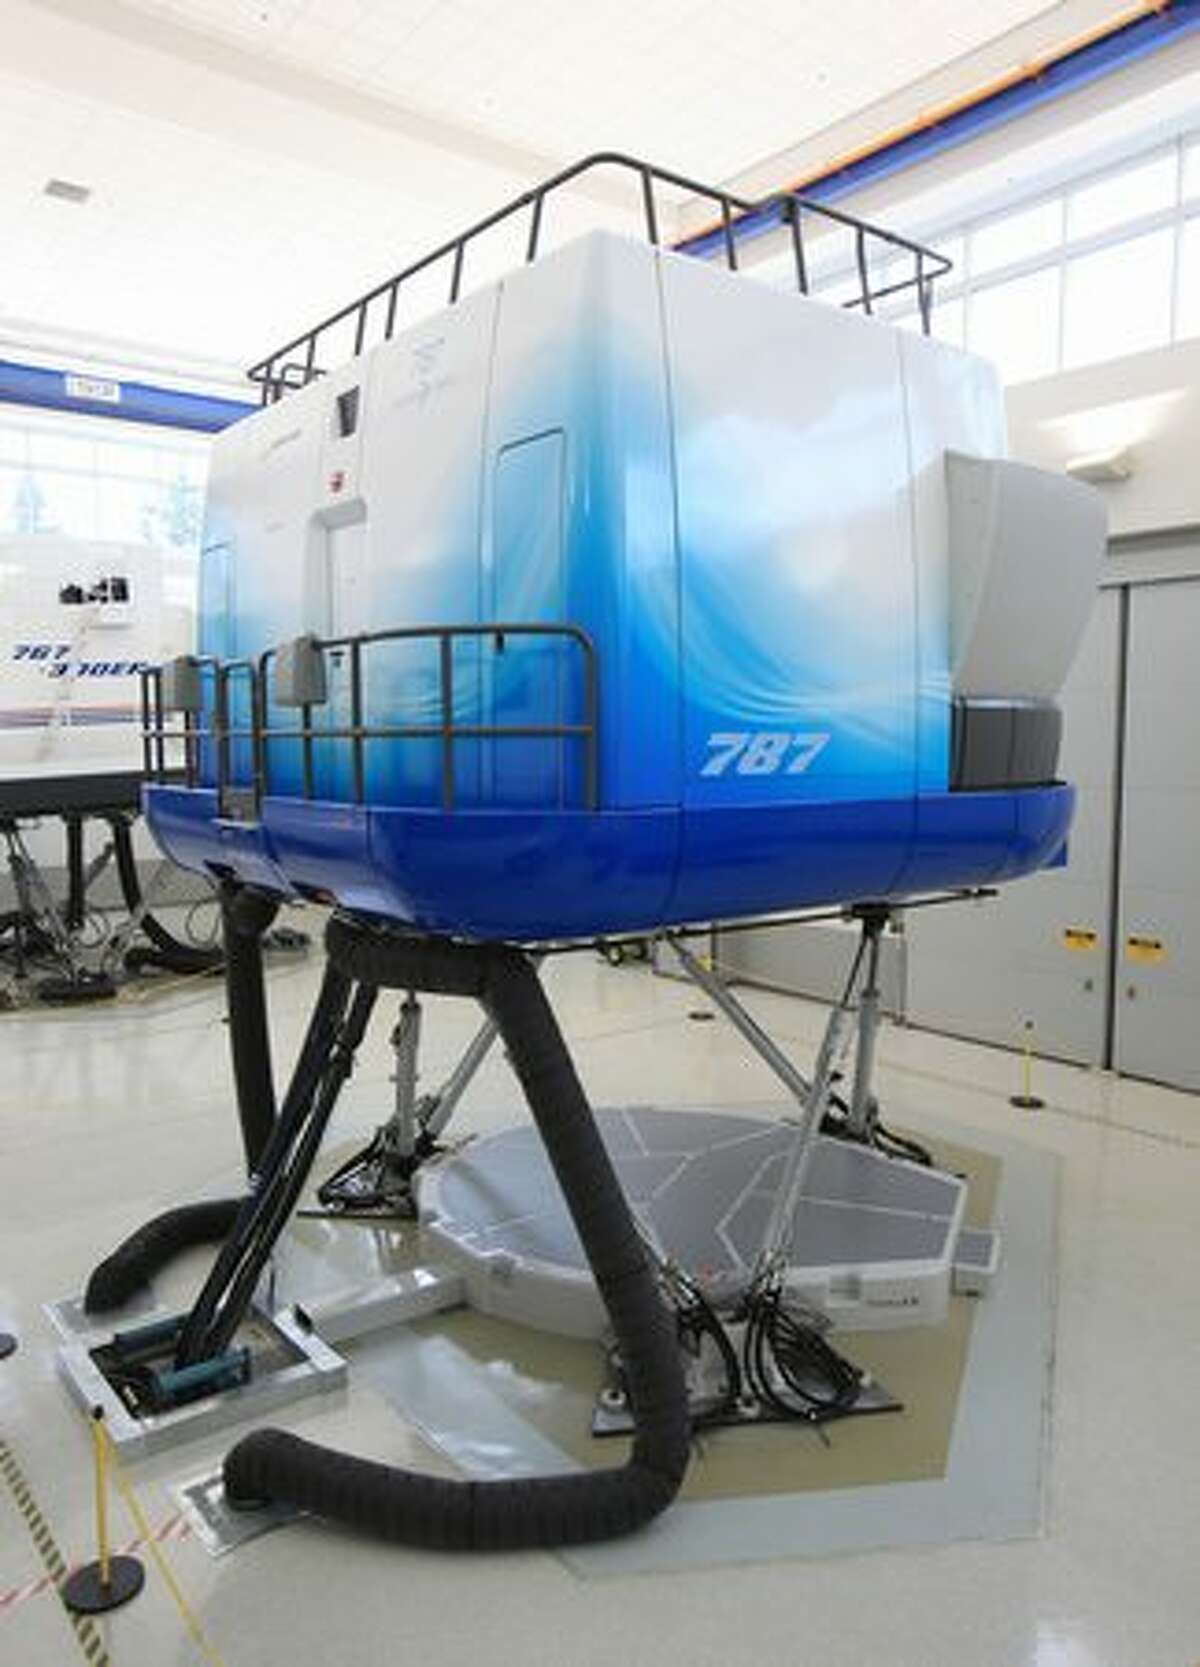 A Boeing 787 Dreamliner full-flight simulator at Boeing's training center in Renton, Wash.